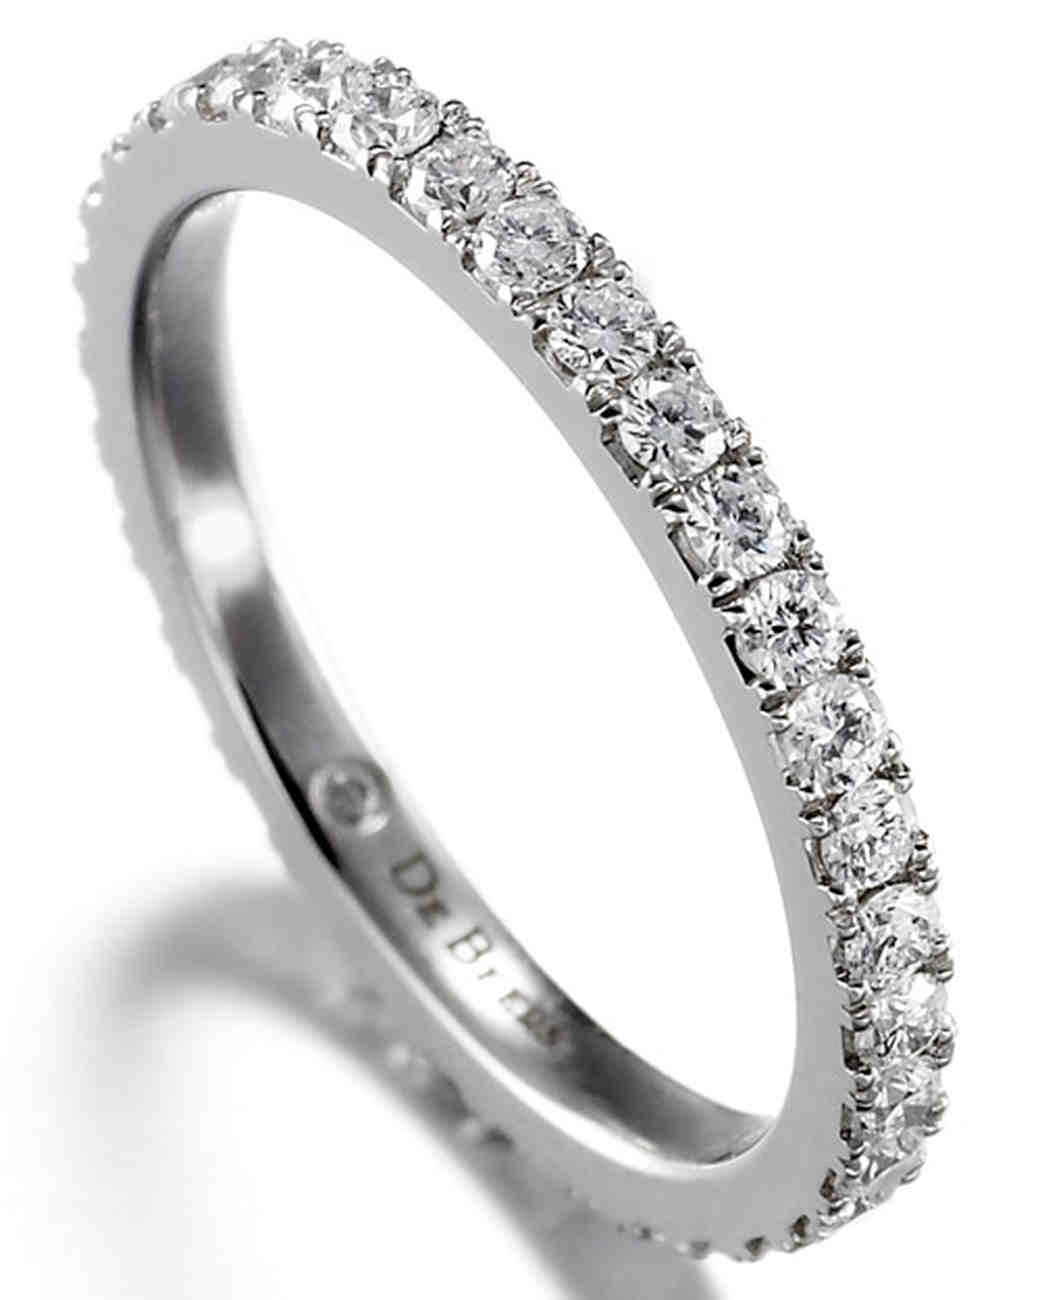 debeers_full_db_classic_micropve_ring_2141.jpg